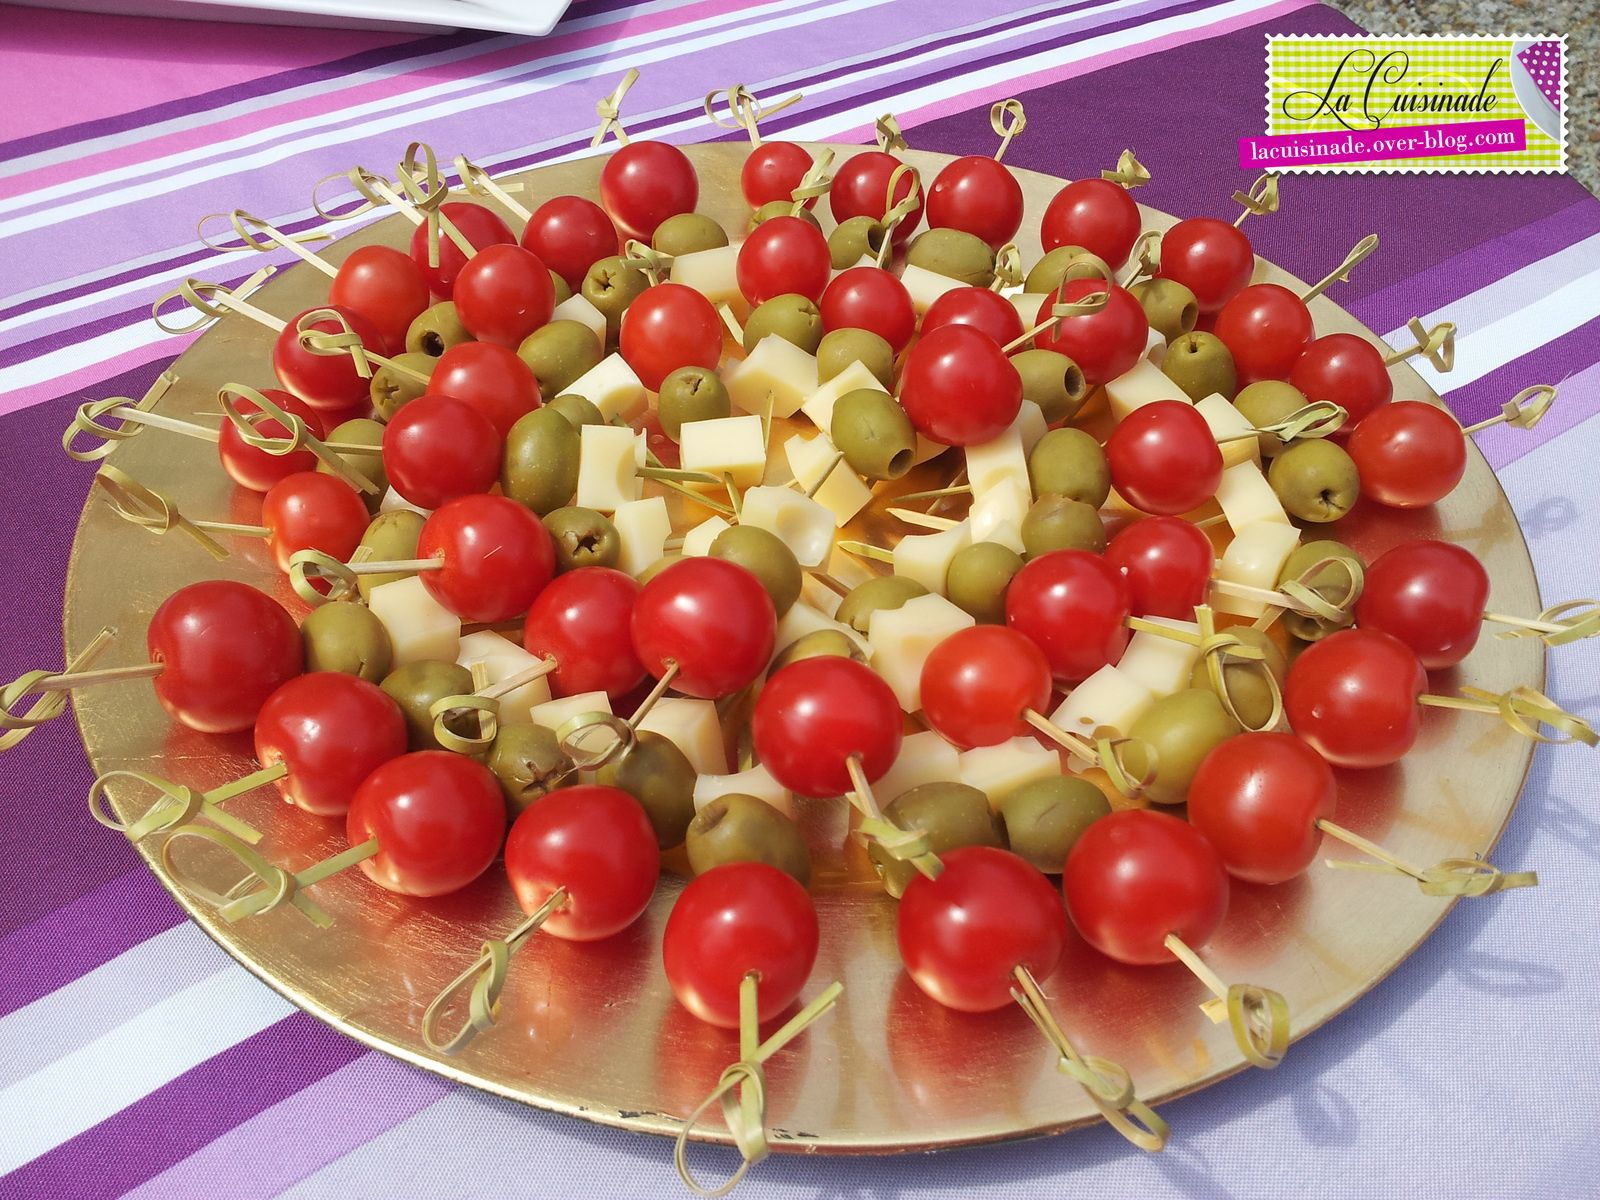 Brochettes ap ritives tomate olive fromage aperitif pinterest brochettes ap ritives - Presentation de brochette de fruits ...